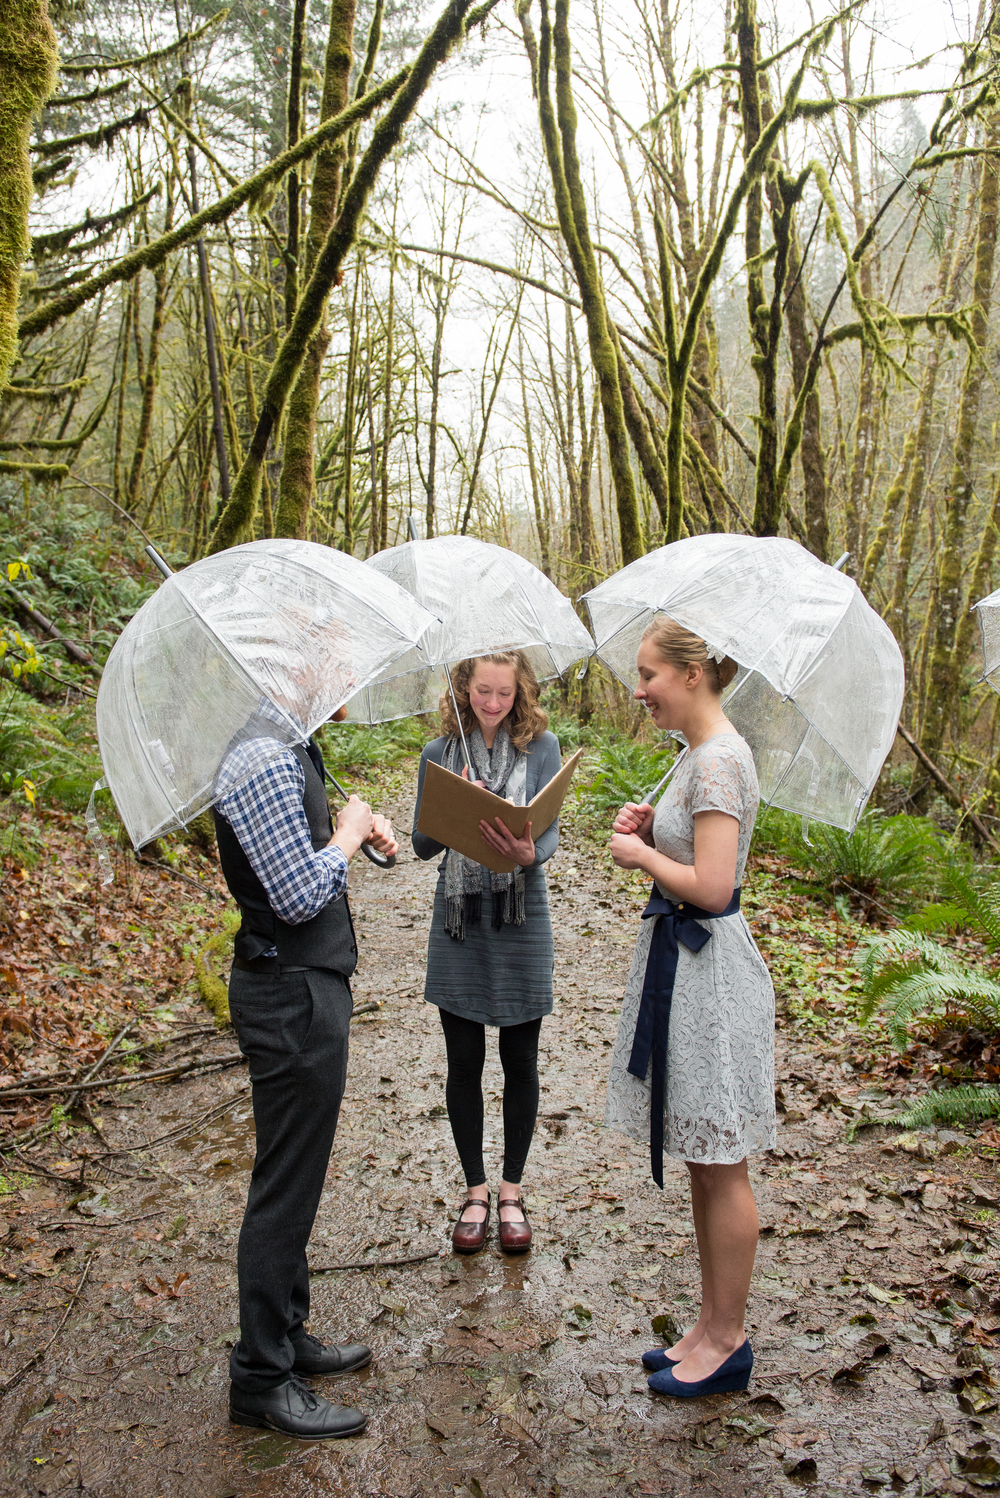 20-beazell-memorial-forest-intimate-outdoor-oregon-wedding.jpg